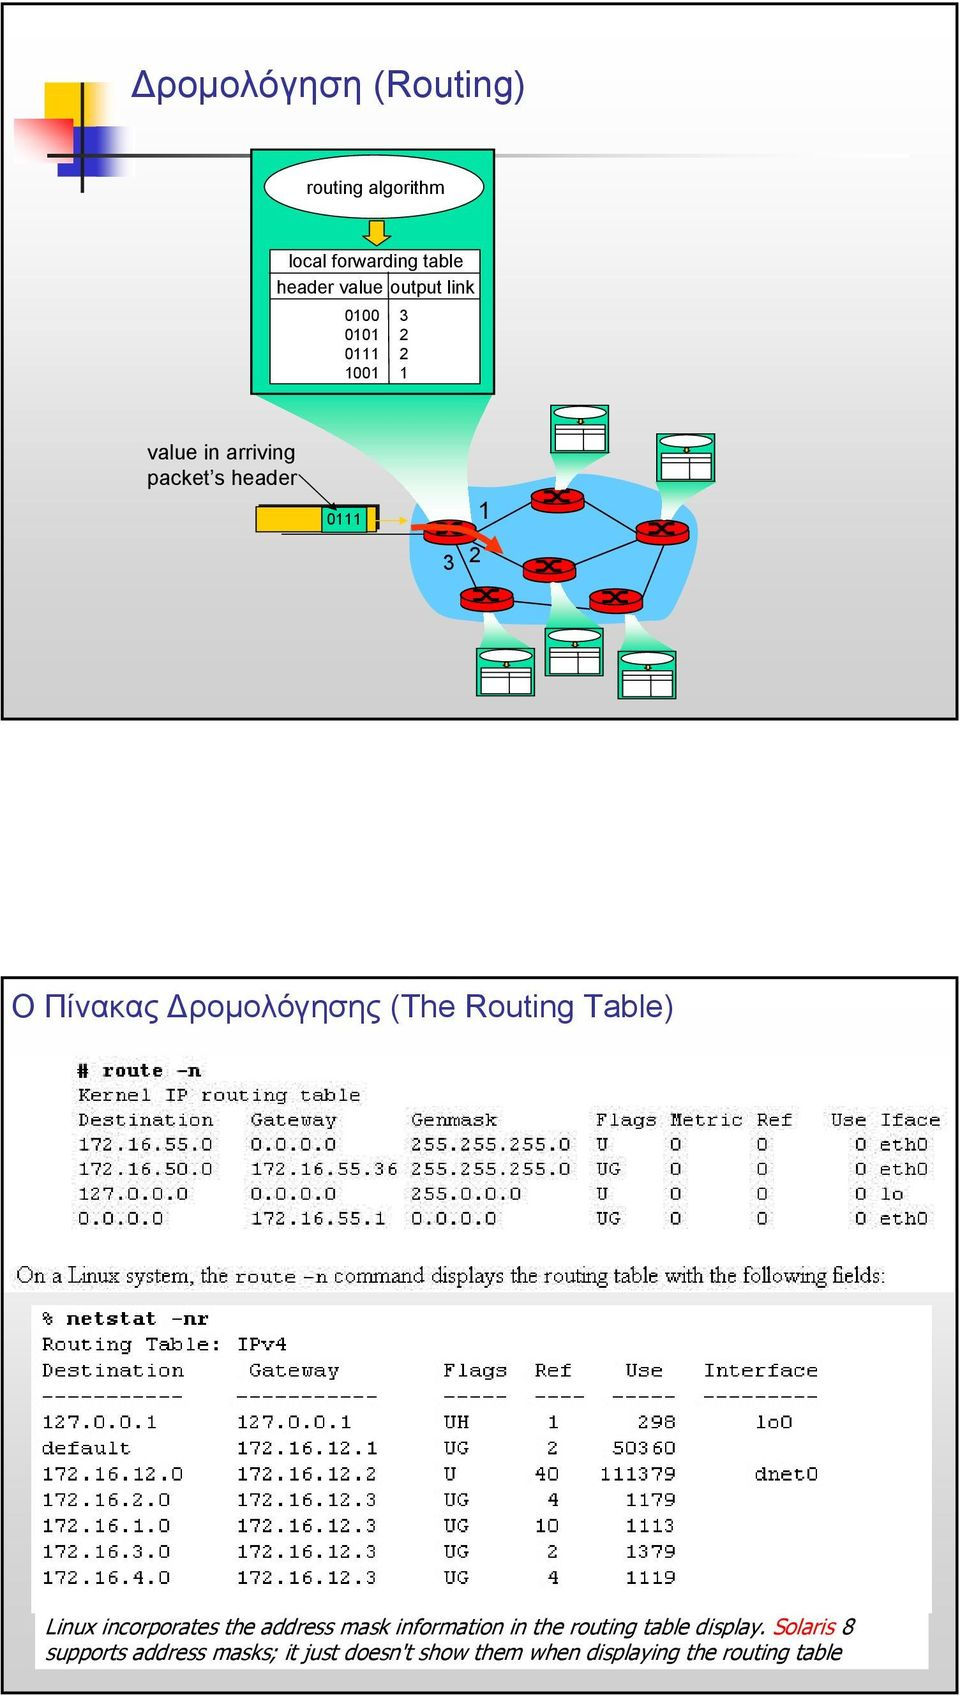 (The Routing Table) Linux incorporates the address mask information in the routing table